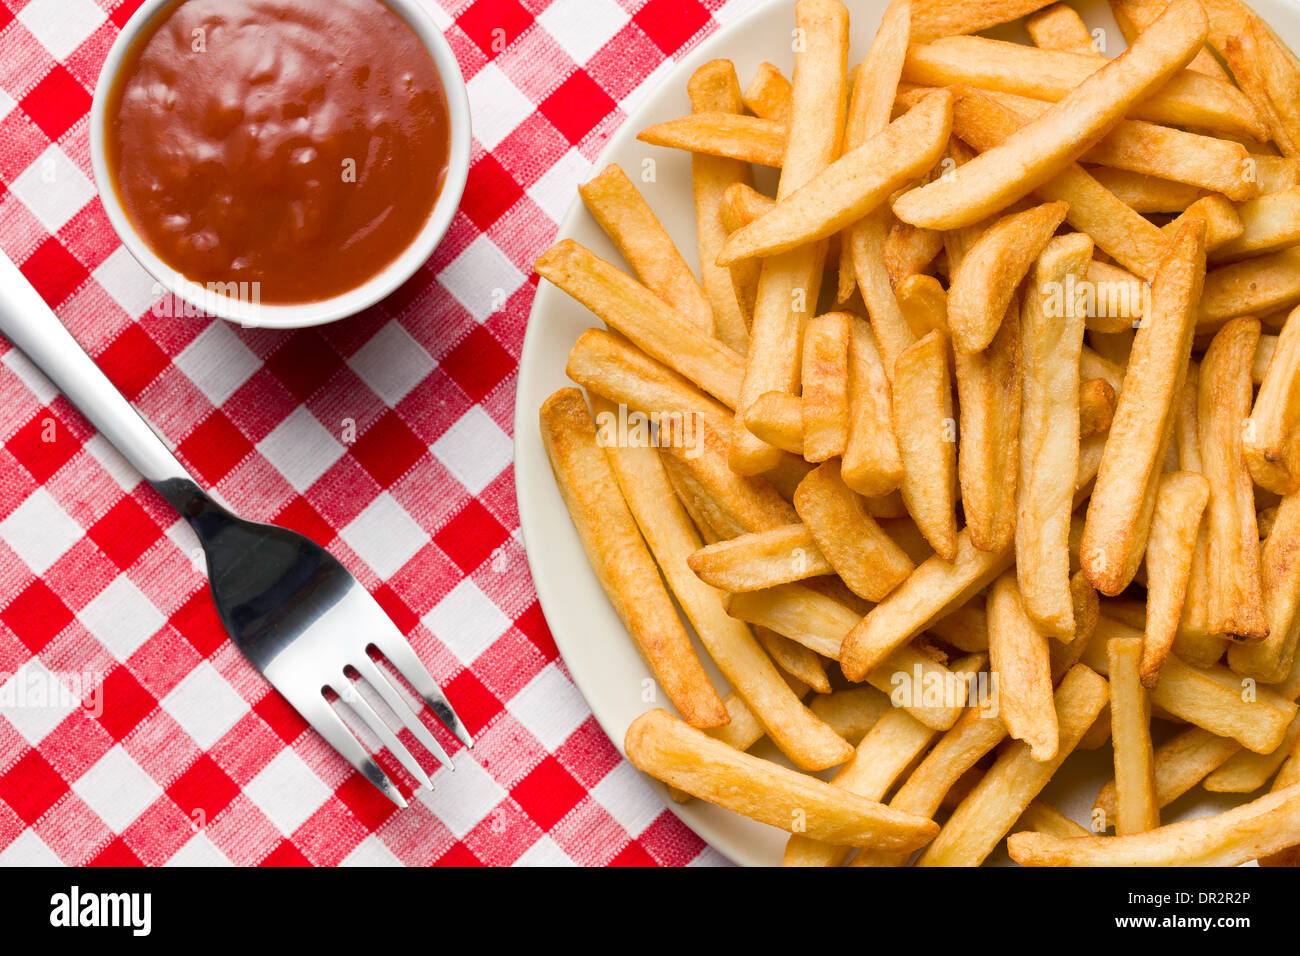 top view of french fries on plate with ketchup on checkered tablecloth - Stock Image